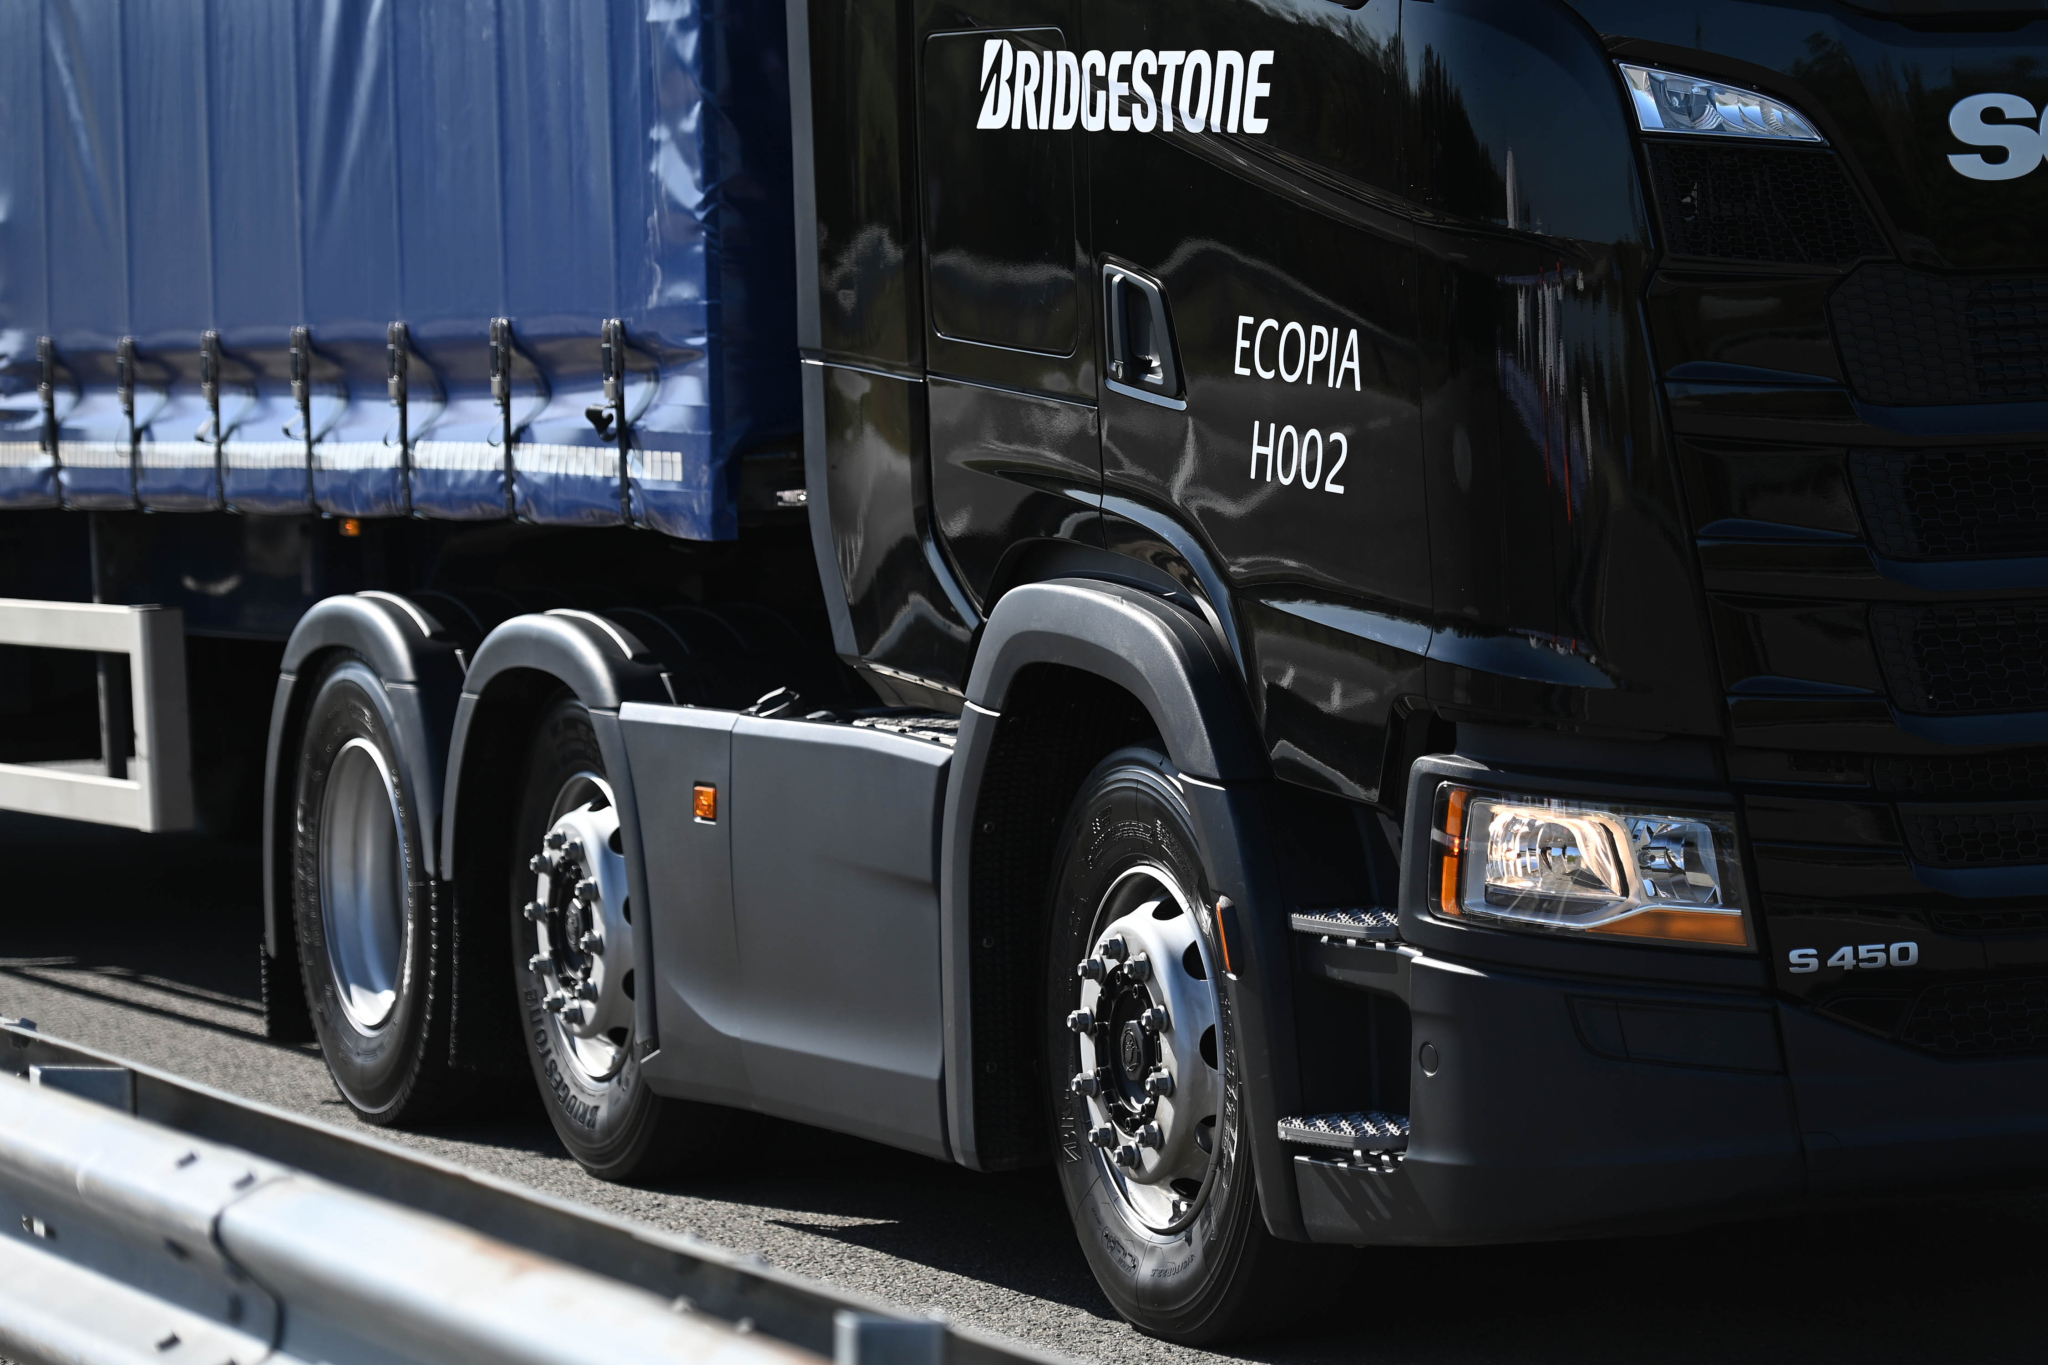 Bridgestone discusses 'multi-faceted fleet customer approach'